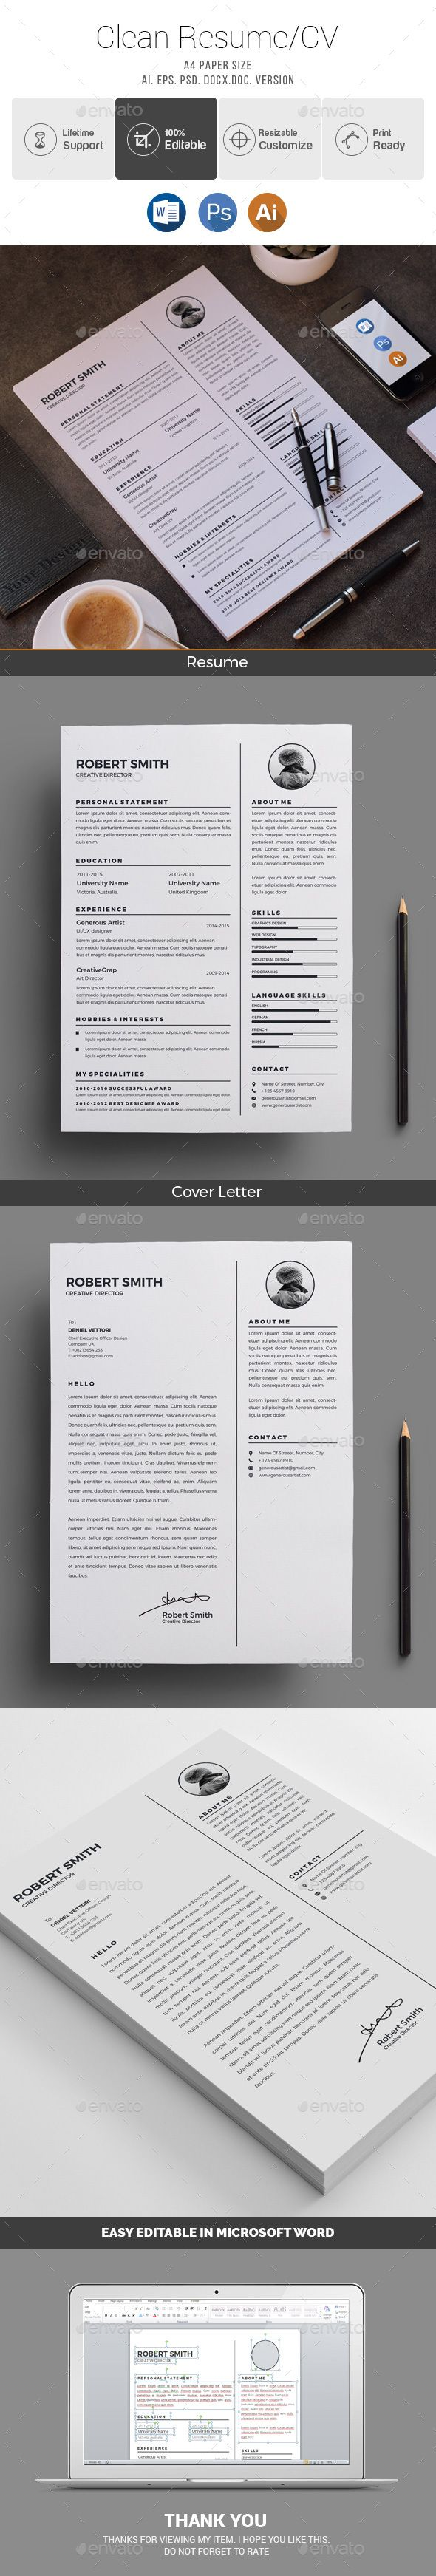 Resume / CV Template PSD, Vector EPS, AI Illustrator, MS Word ...